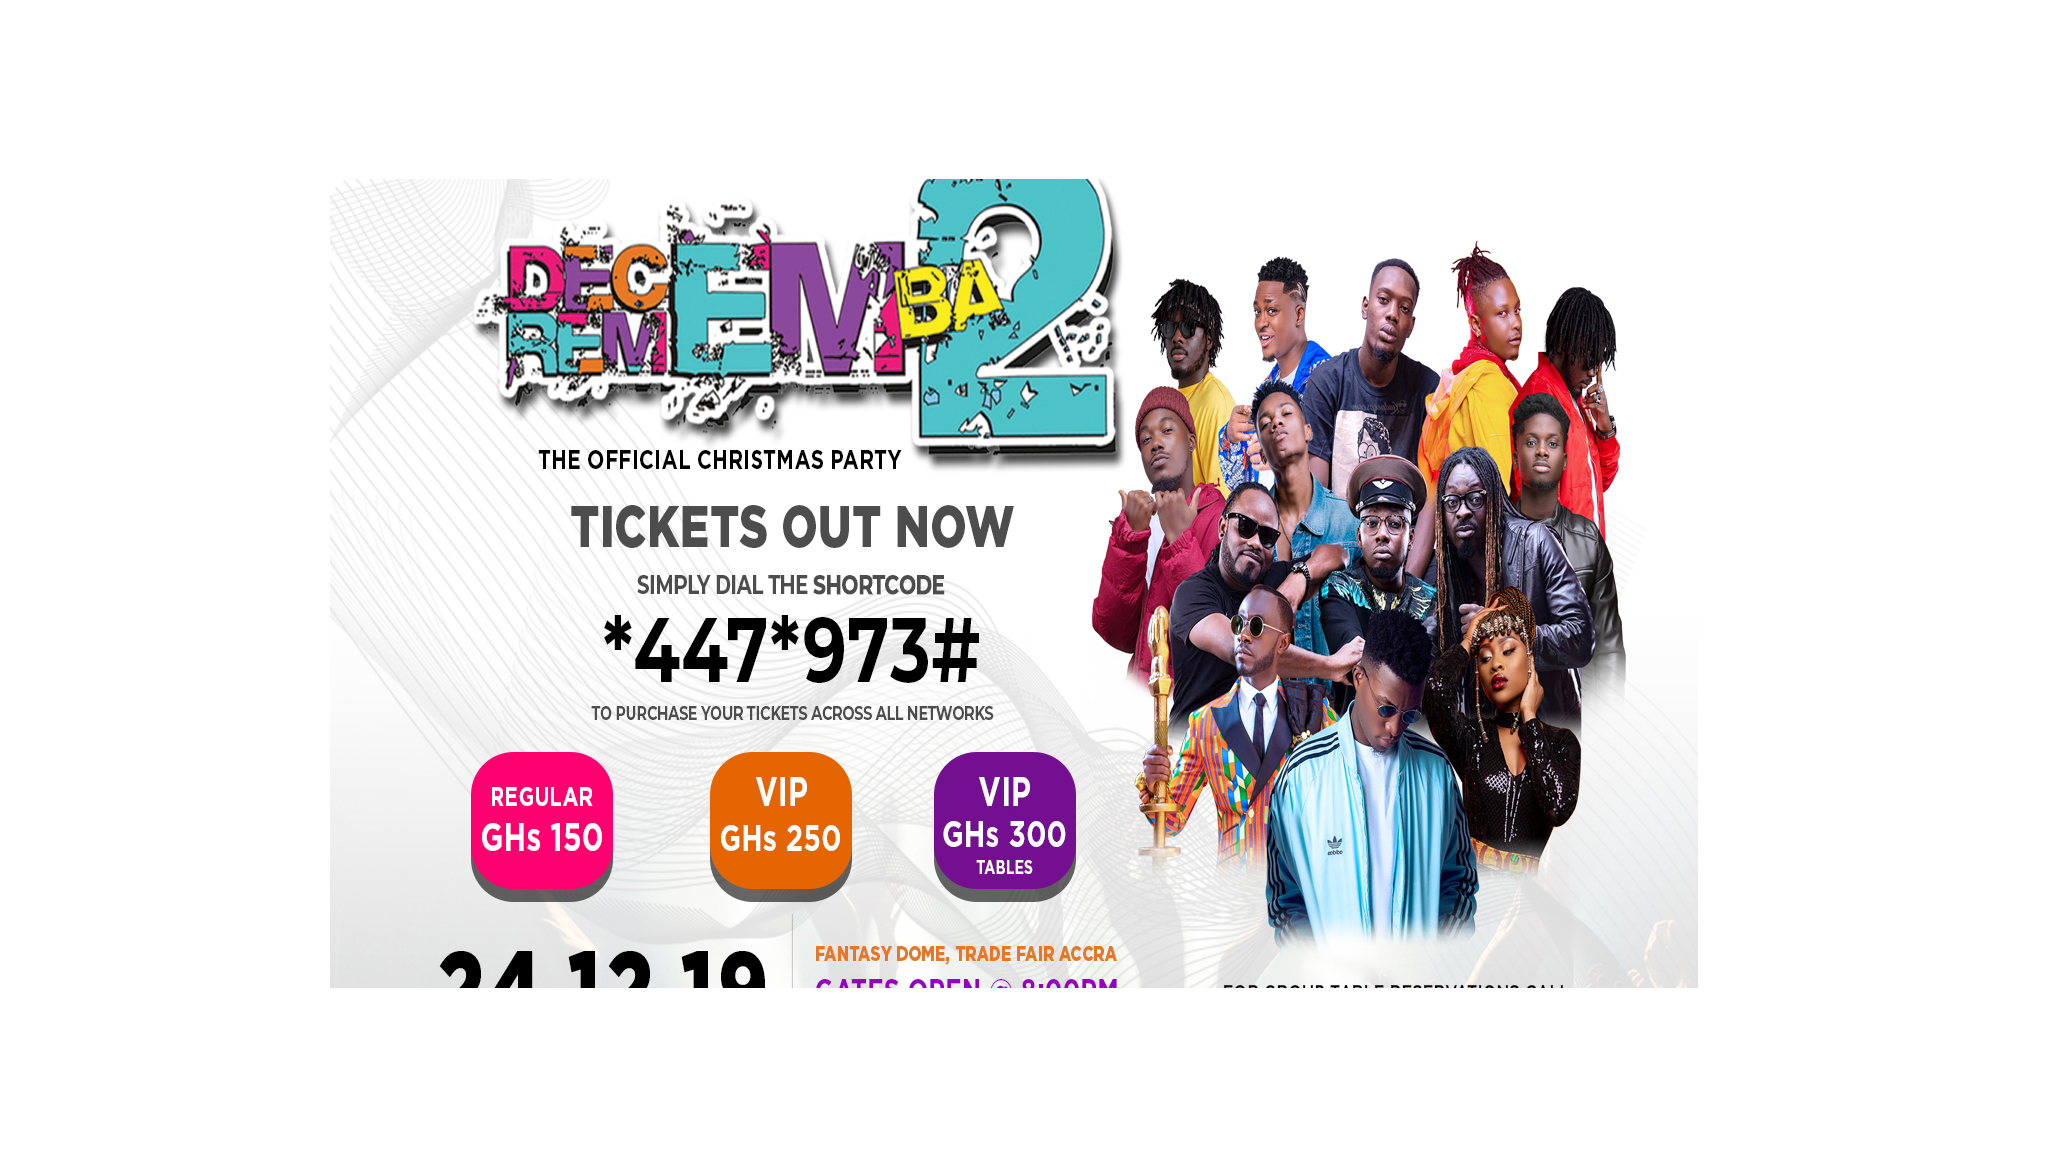 2019 Decemba 2 Rememba concert: Ticket procedures, full list of performers announcedTickets are being sold for GHc 150 (Regular), GHc 250 (VIP) and GHc 300 (VIP with tables).through shortcodes.